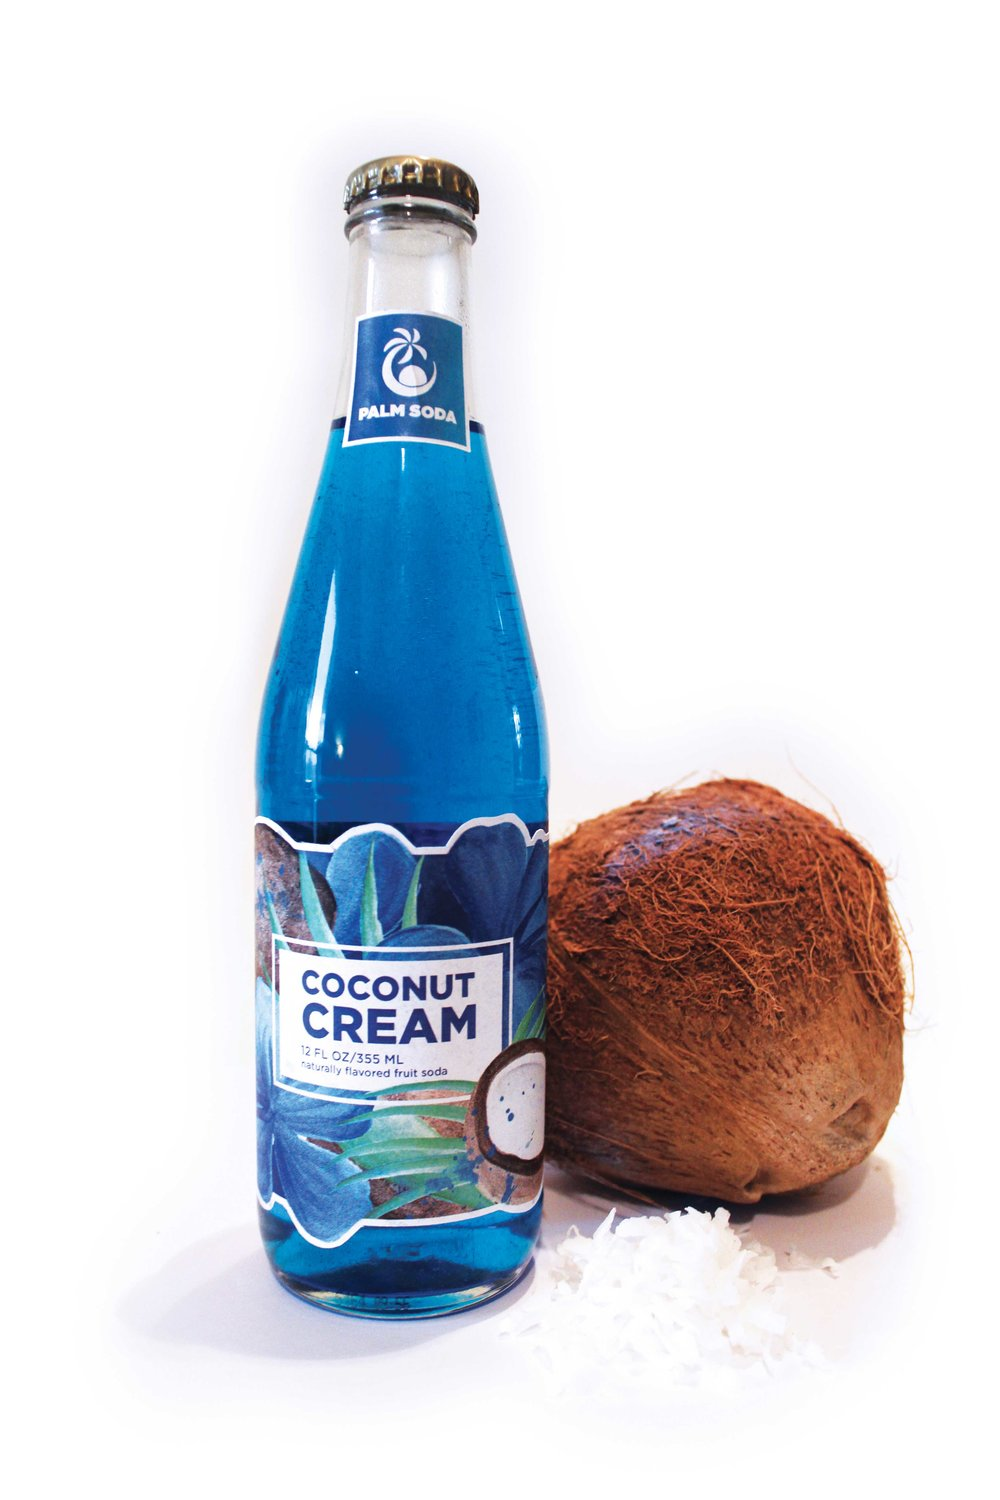 Coconut-cream-with-coconut.jpg